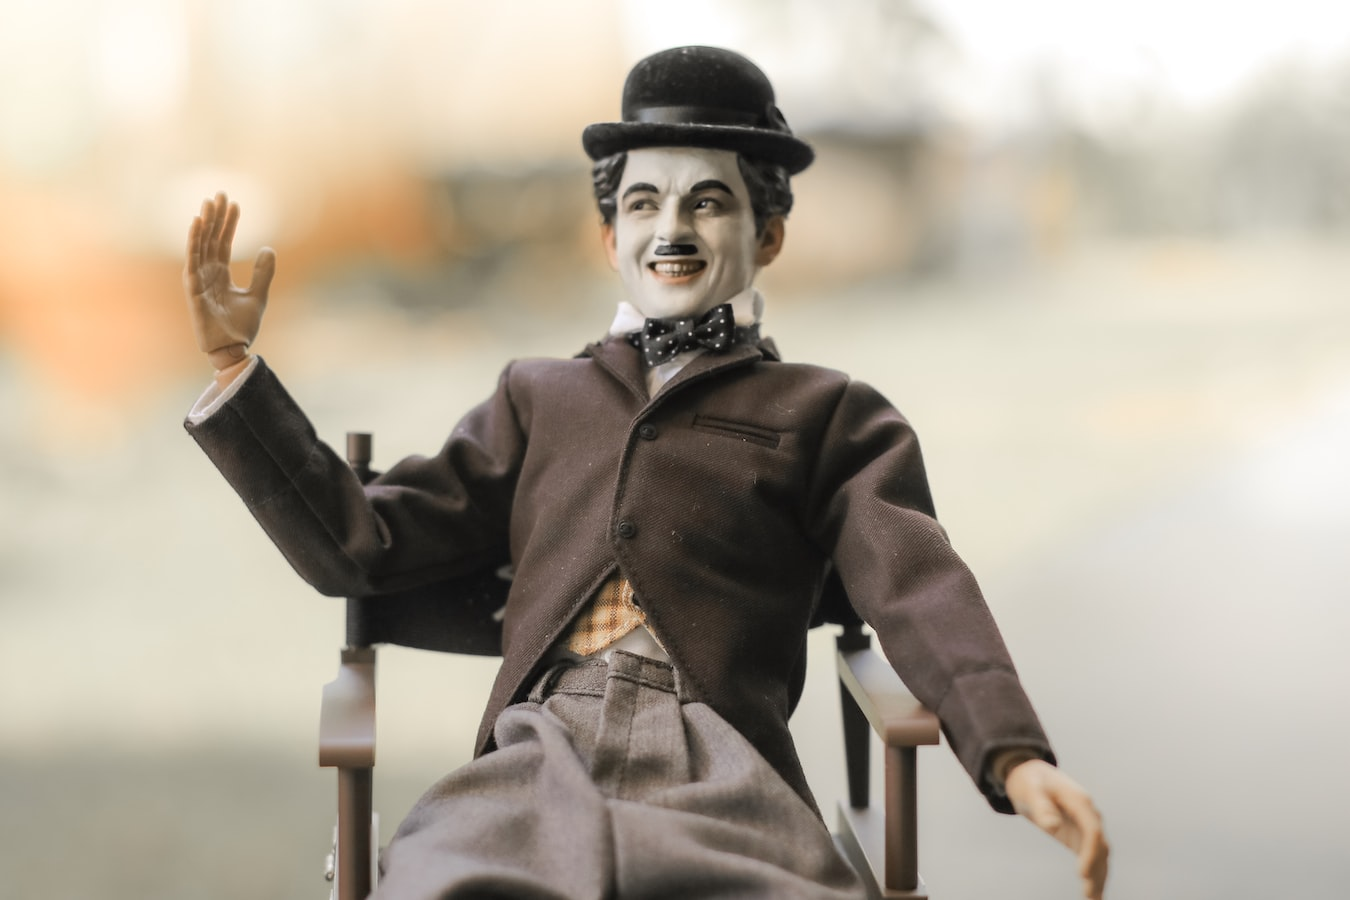 A Charlie Chaplain model with bowler hat and trademark moustache.